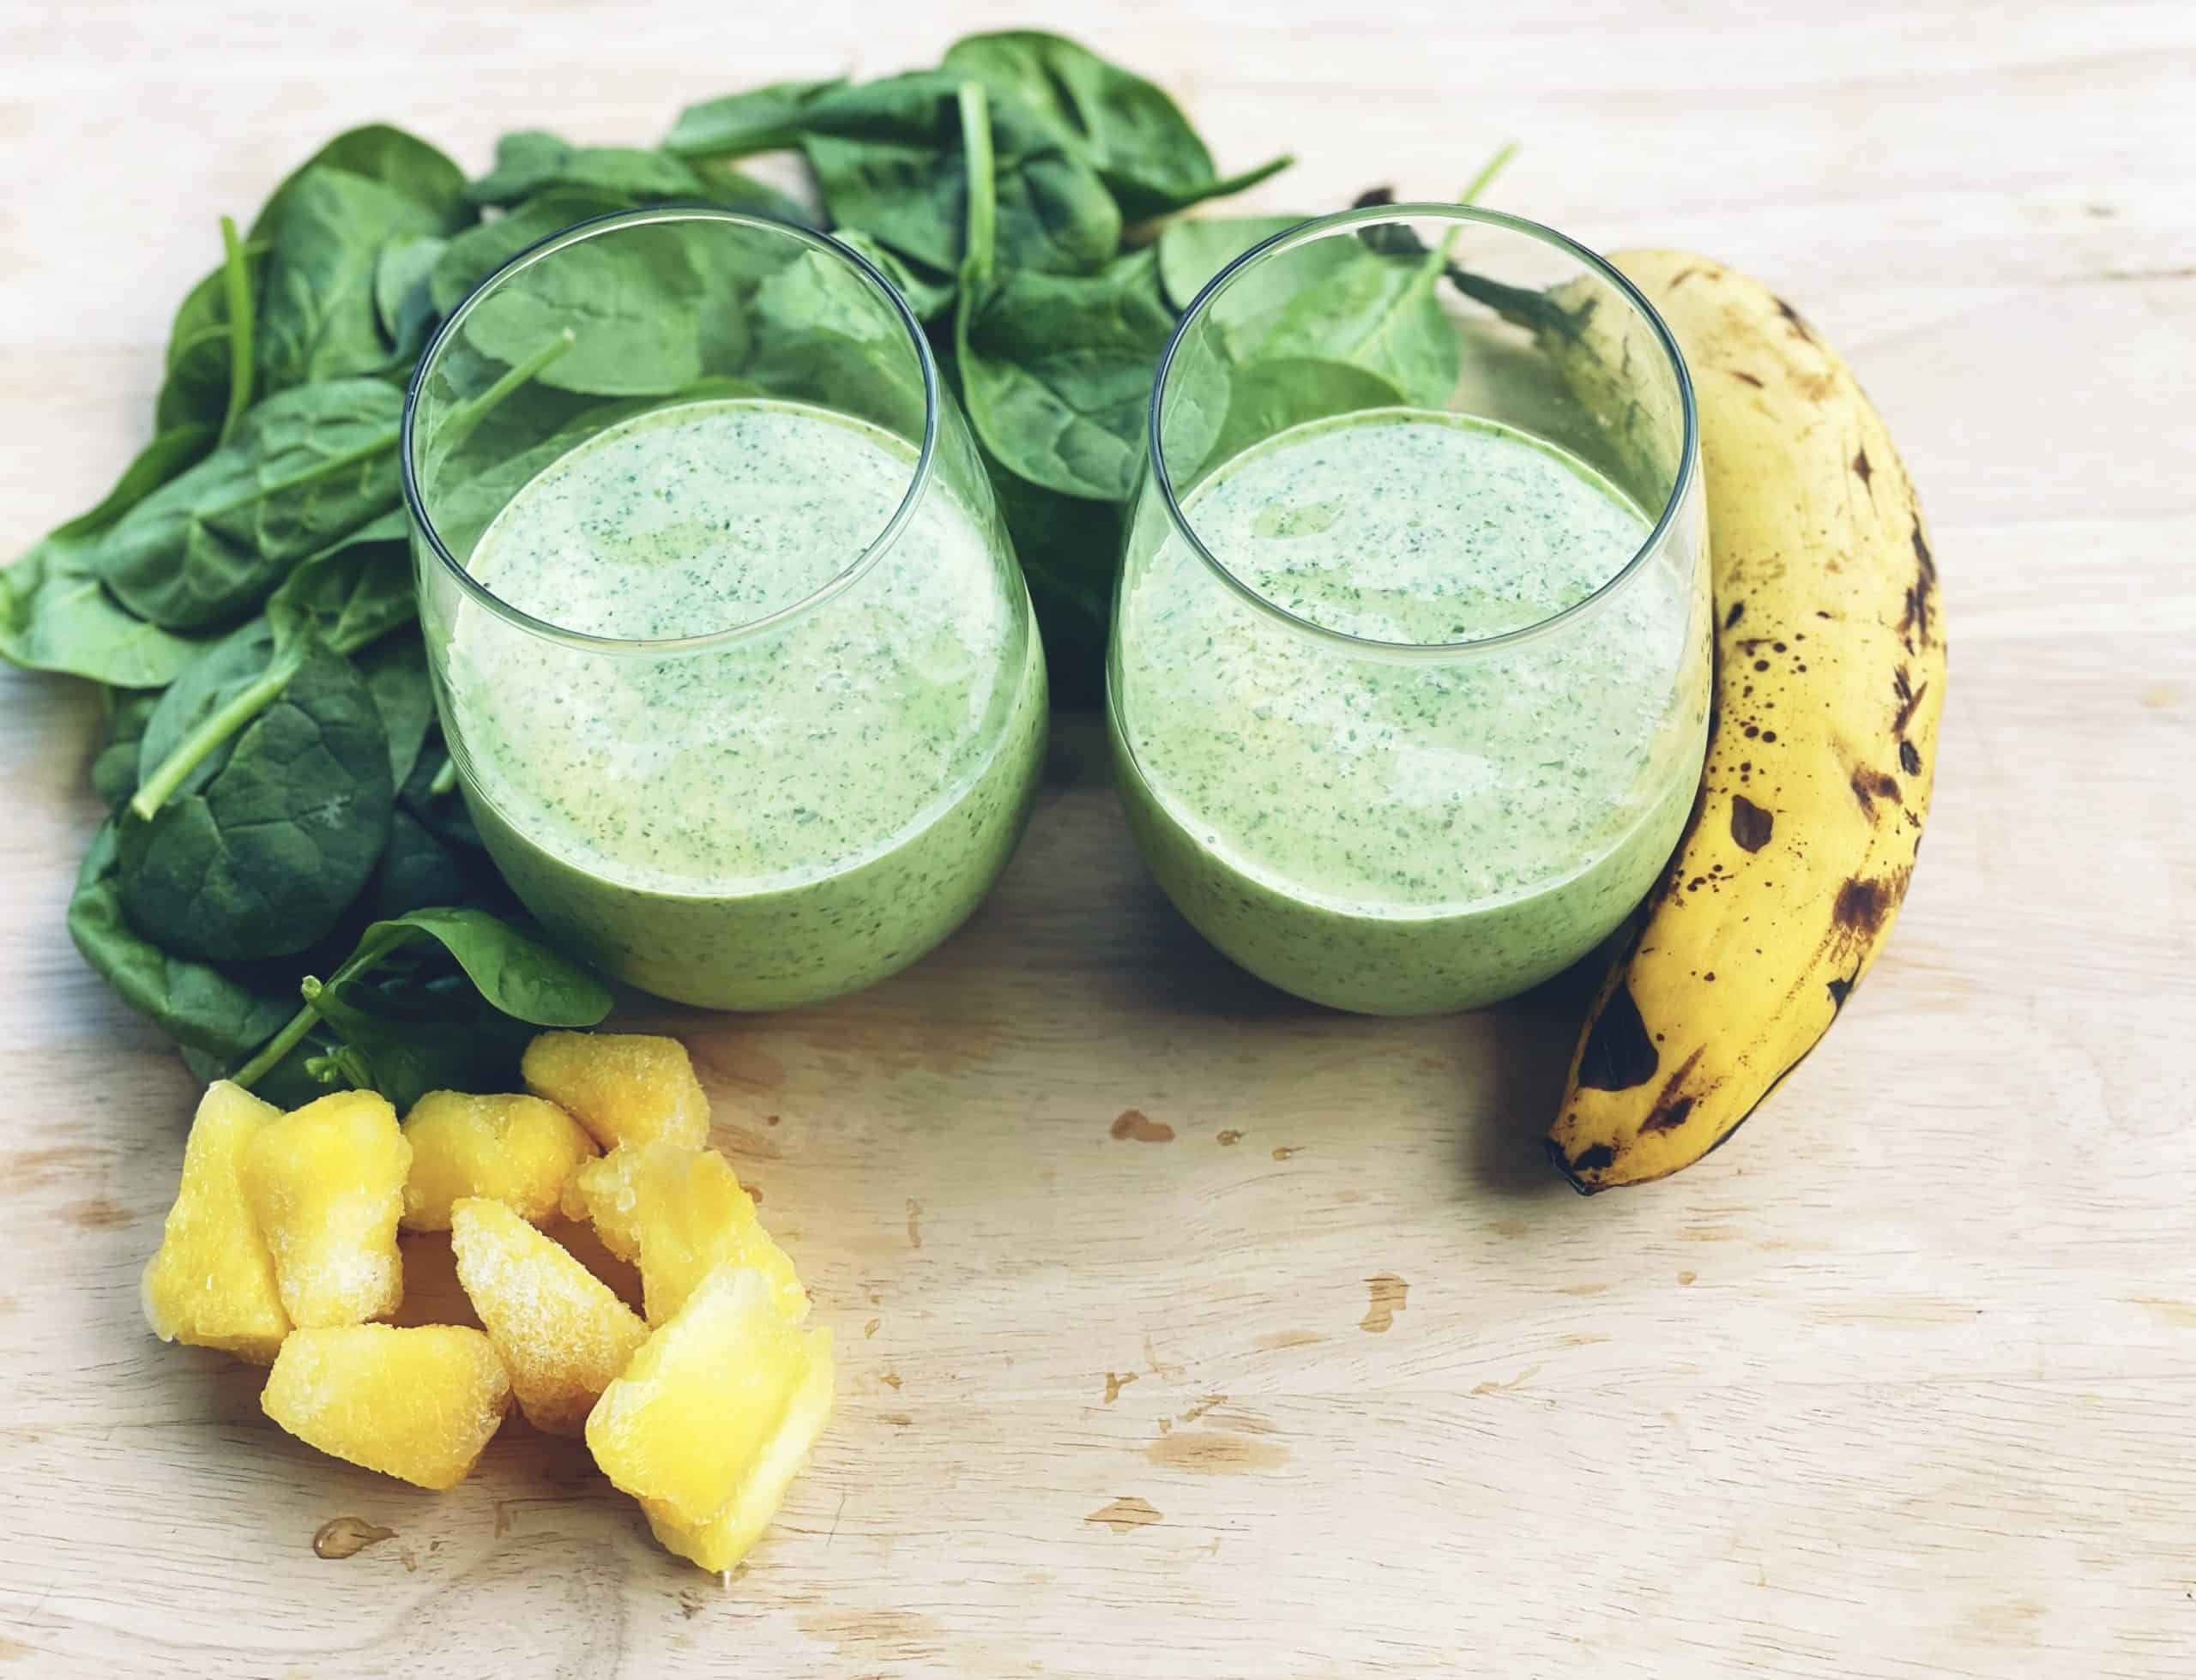 2 glasses with island green smoothie surrounded by banana, spinach and pineapple